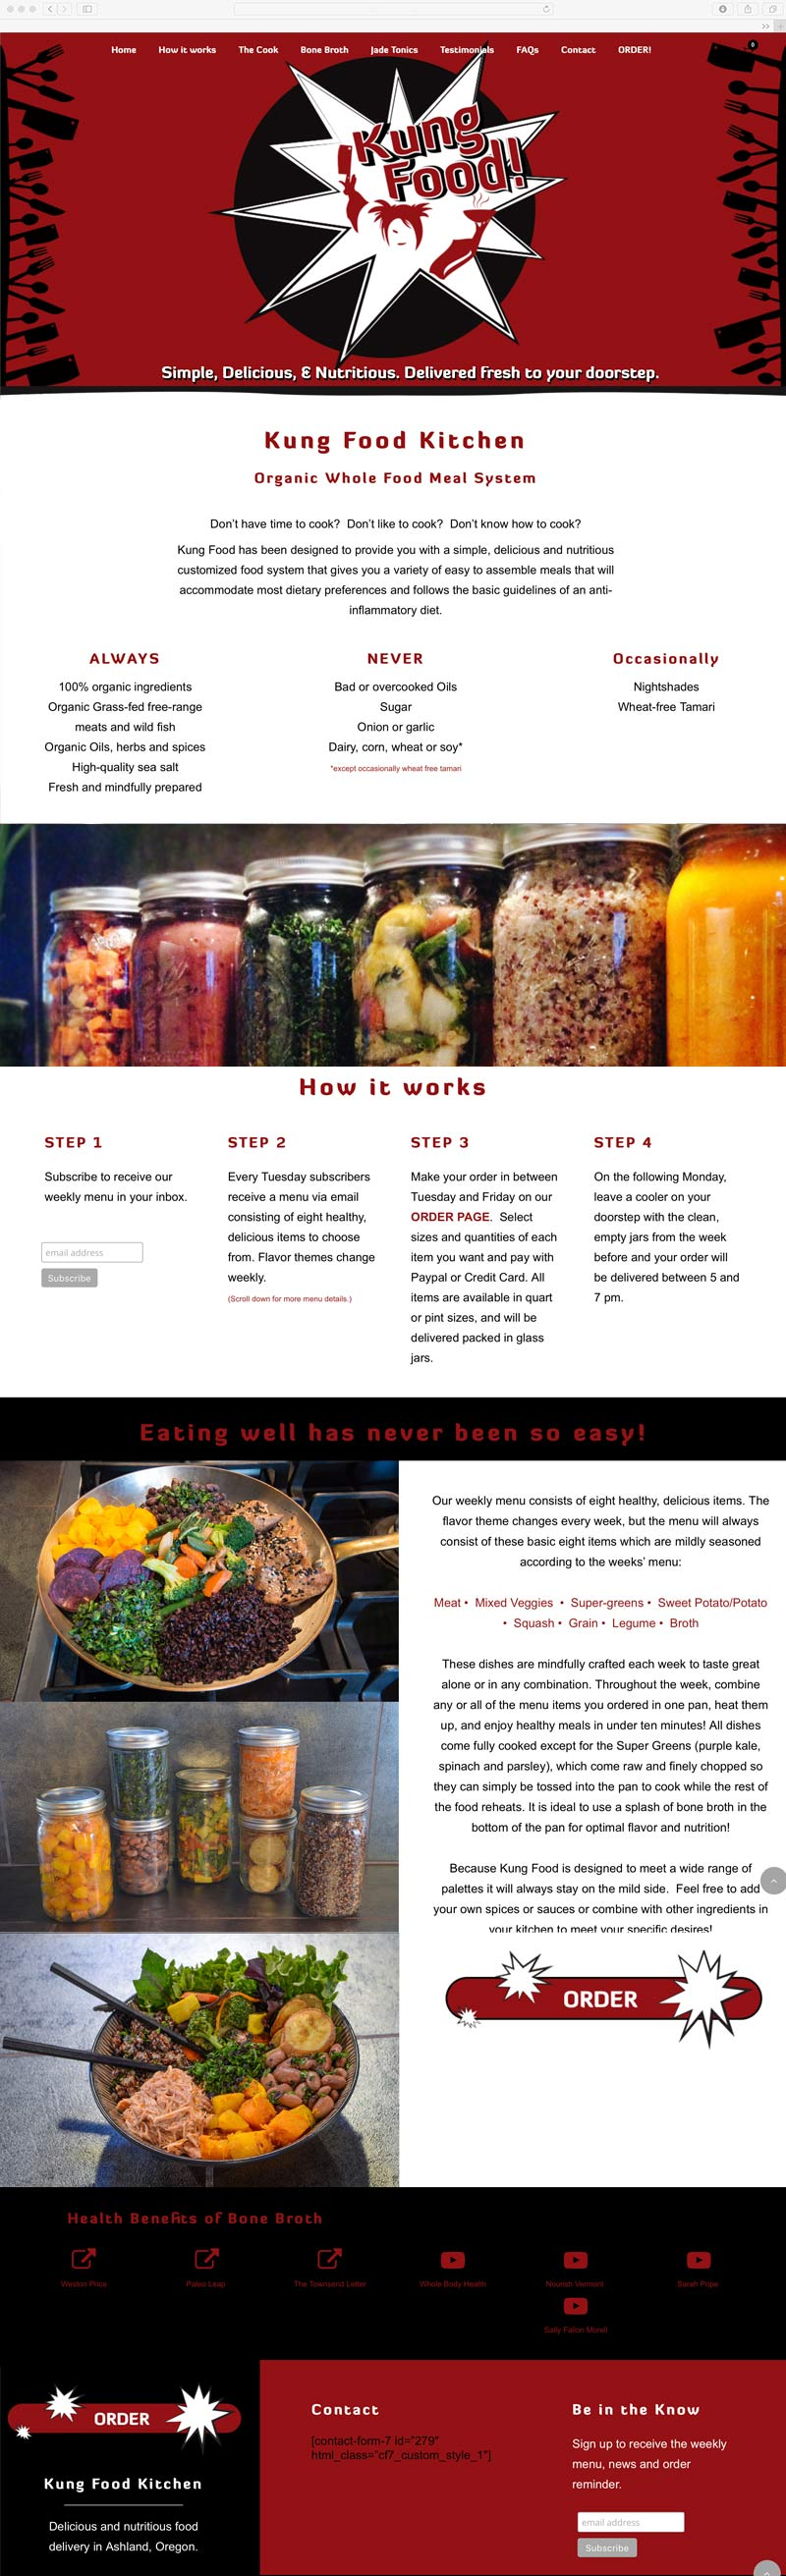 Kung Food website design